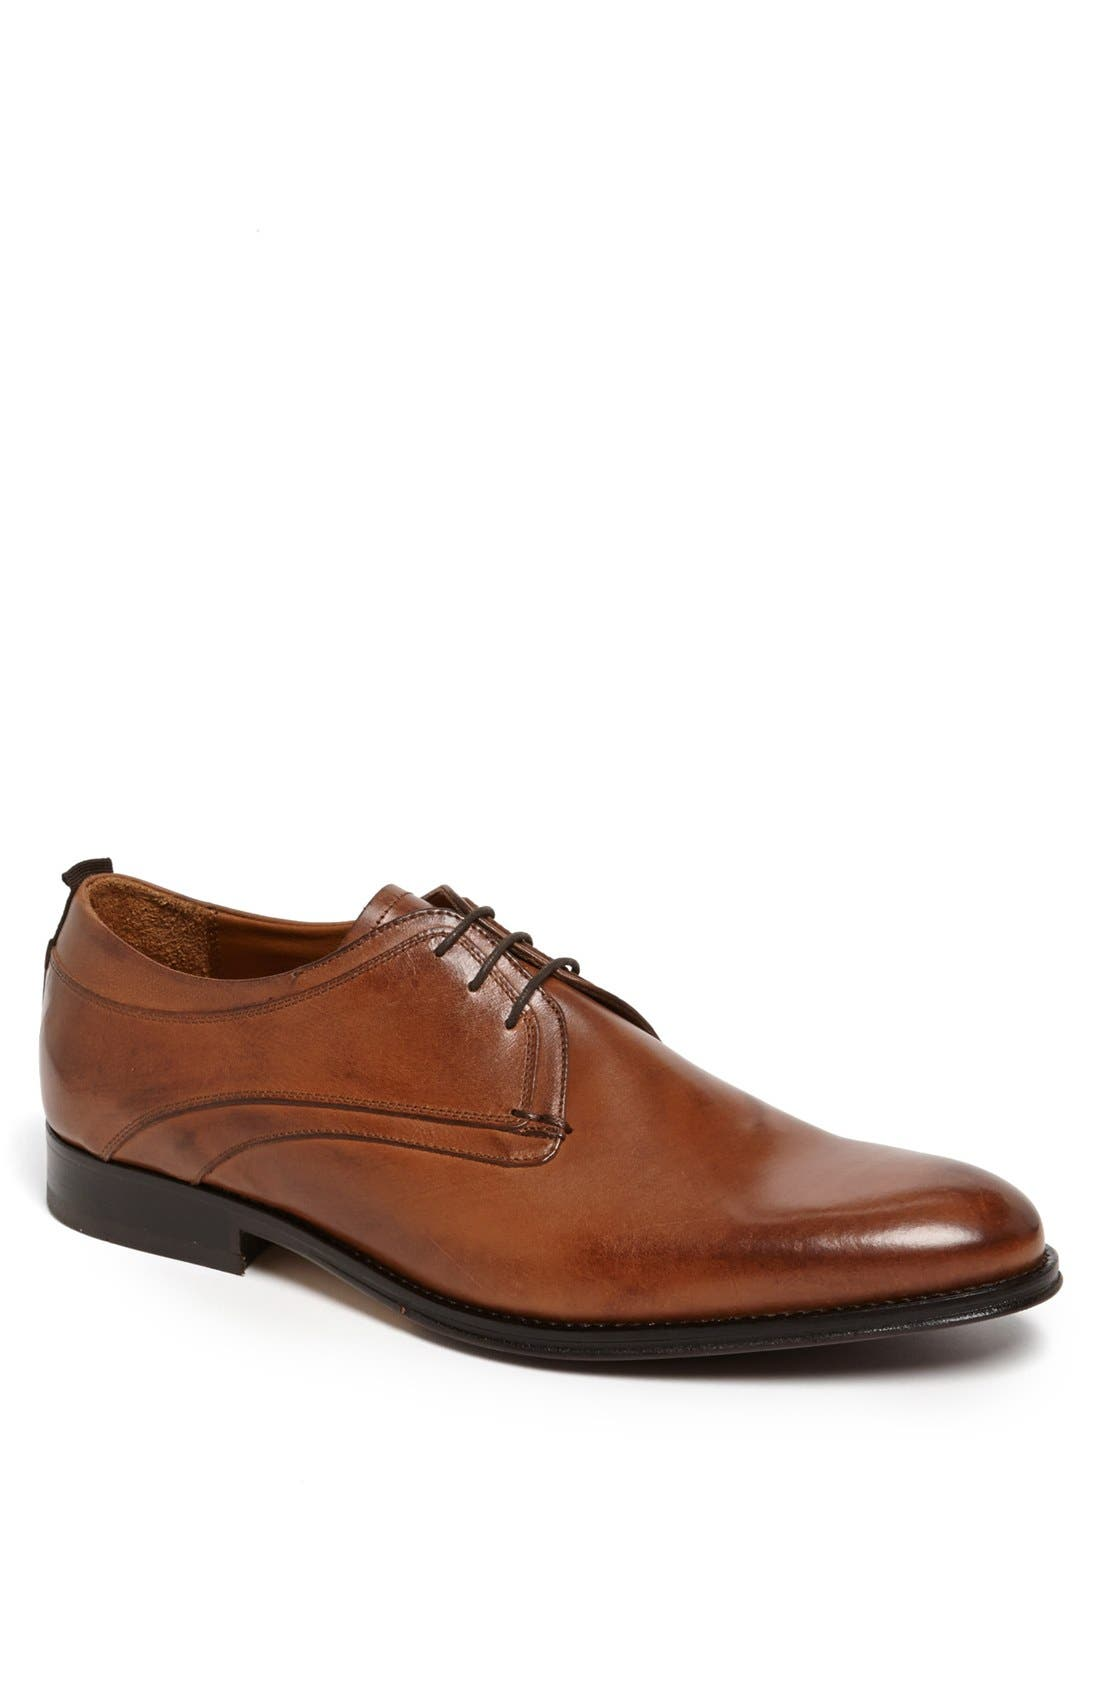 Alternate Image 1 Selected - ALDO 'Tumma' Plain Toe Derby (Men)